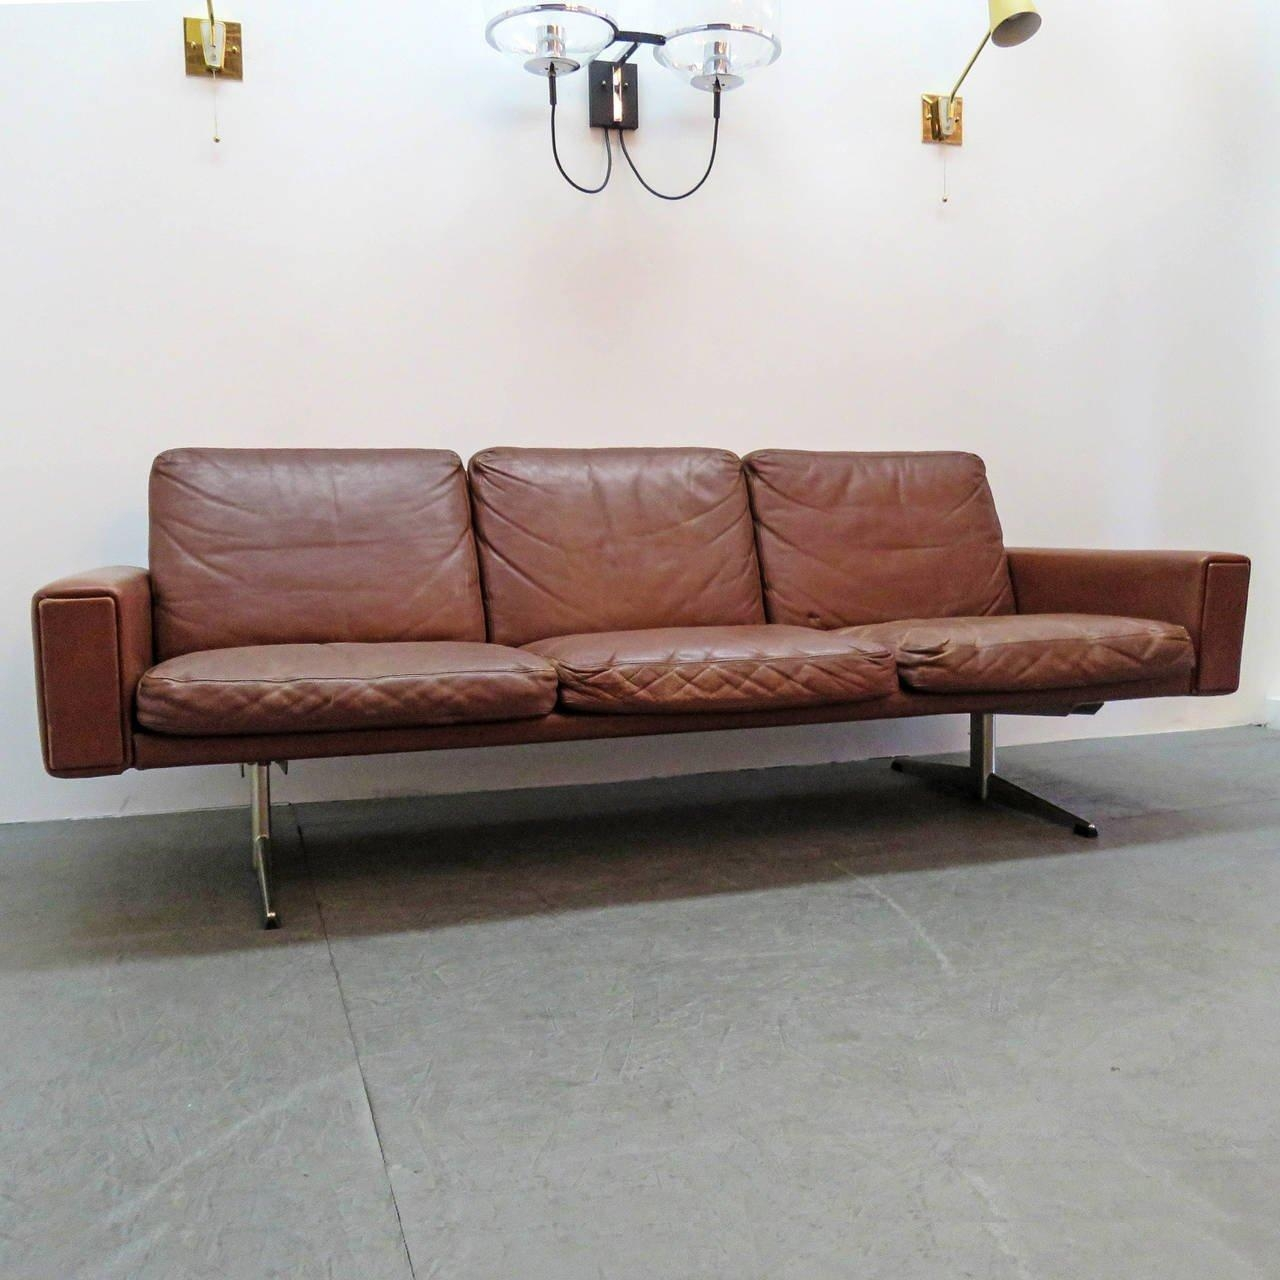 Scandinavian Furniture Sale 20 Inspirations Danish Leather Sofas Sofa Ideas